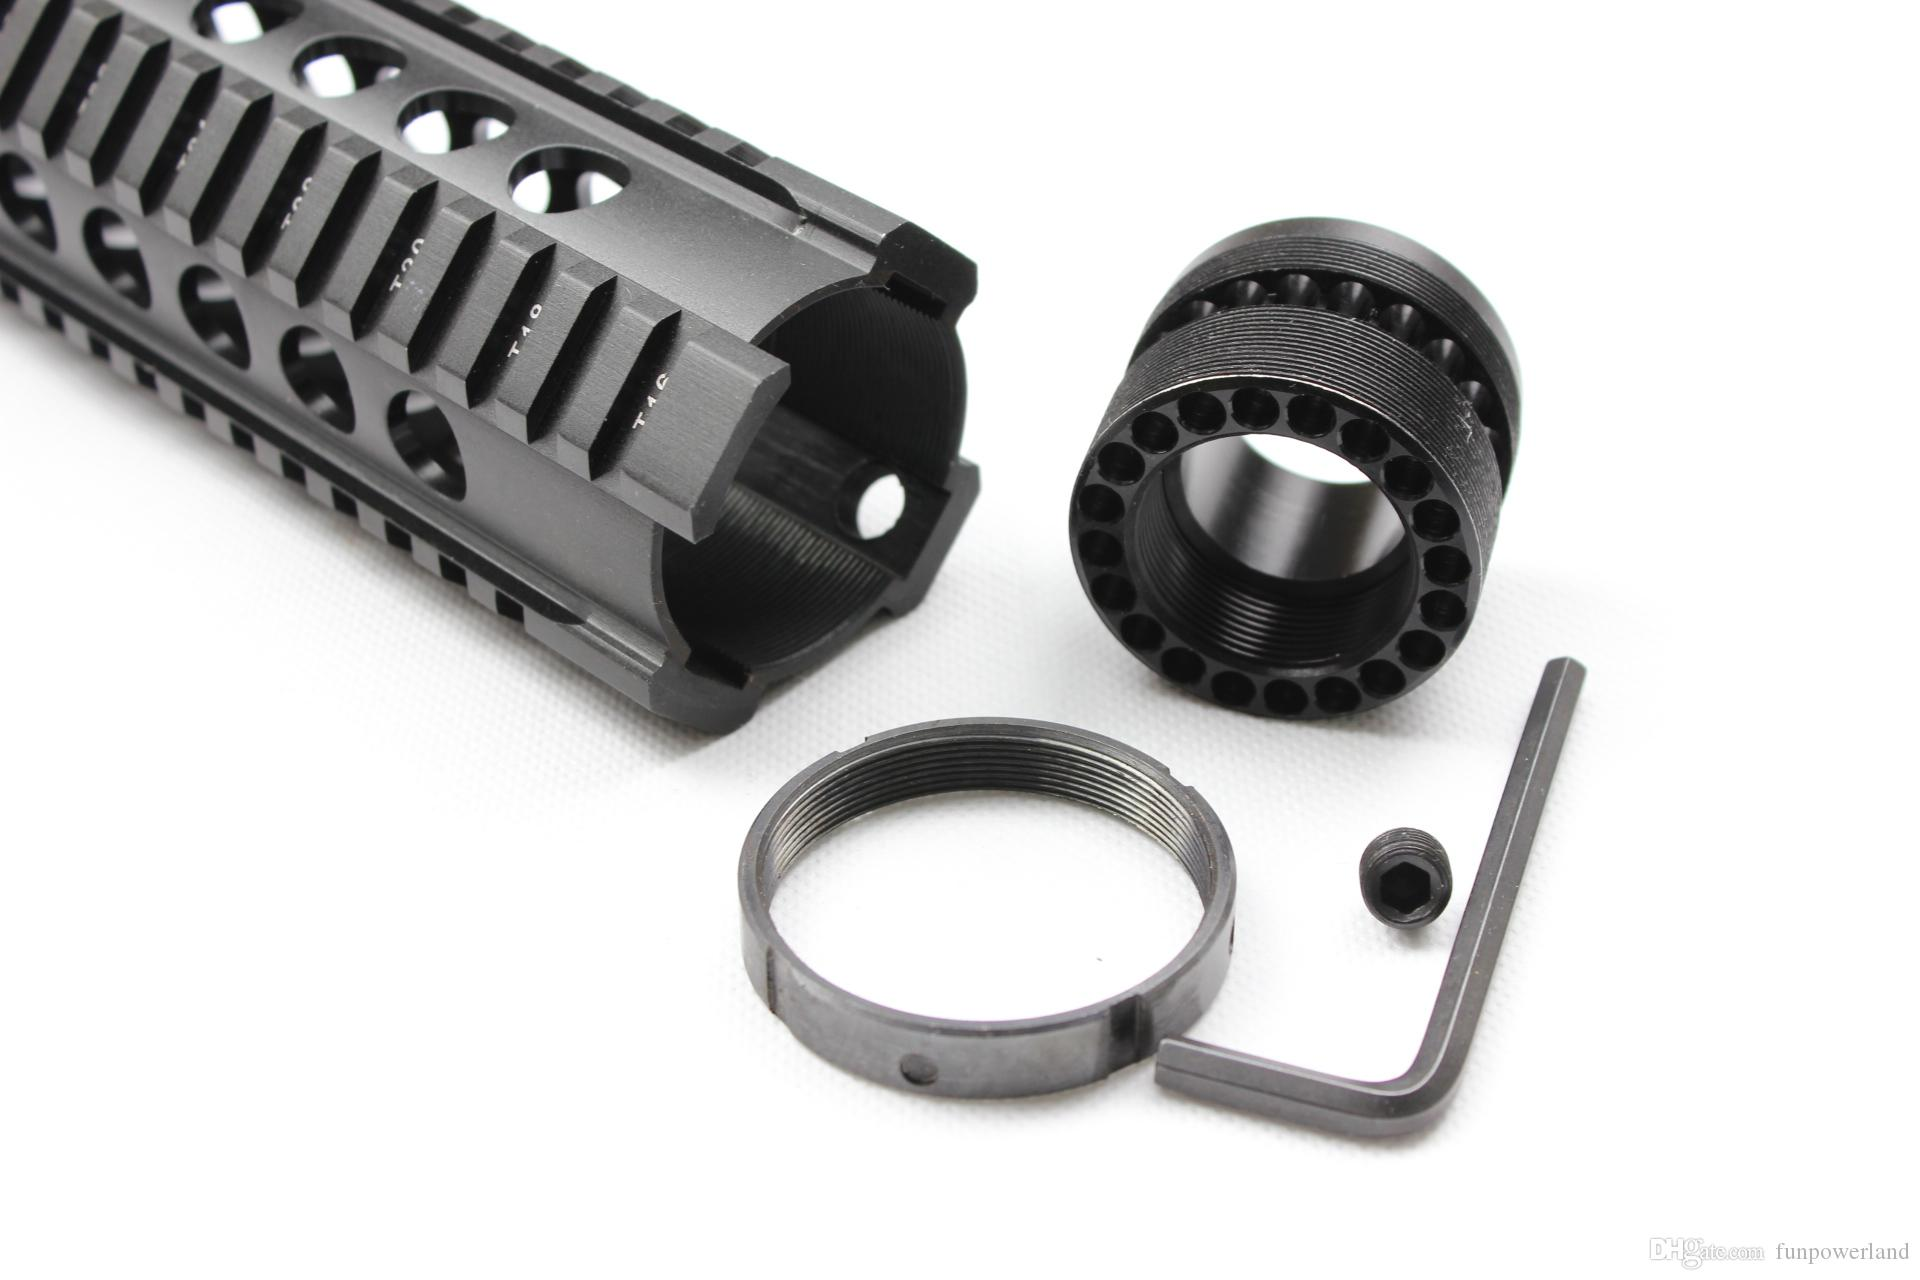 Funpowerland High quality Tactical T-Serie 4/15 Free Float 12 Inch Handguard Quad Rail Scope Mount